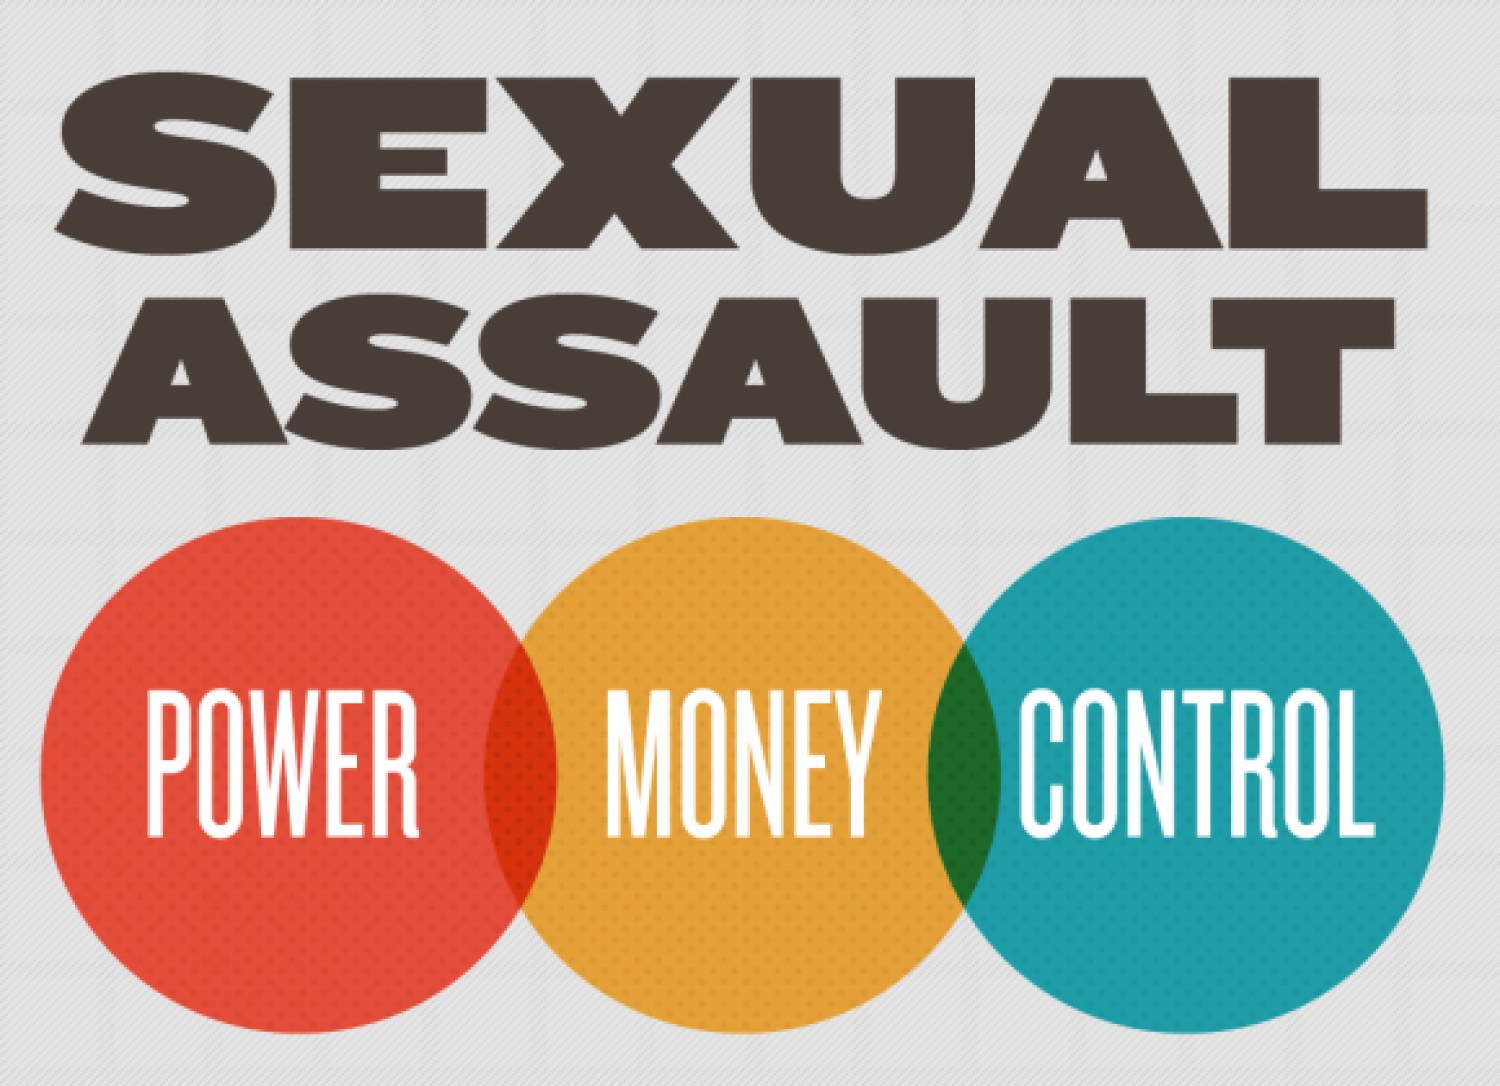 Sexual Assault: Power  Money  Control Infographic